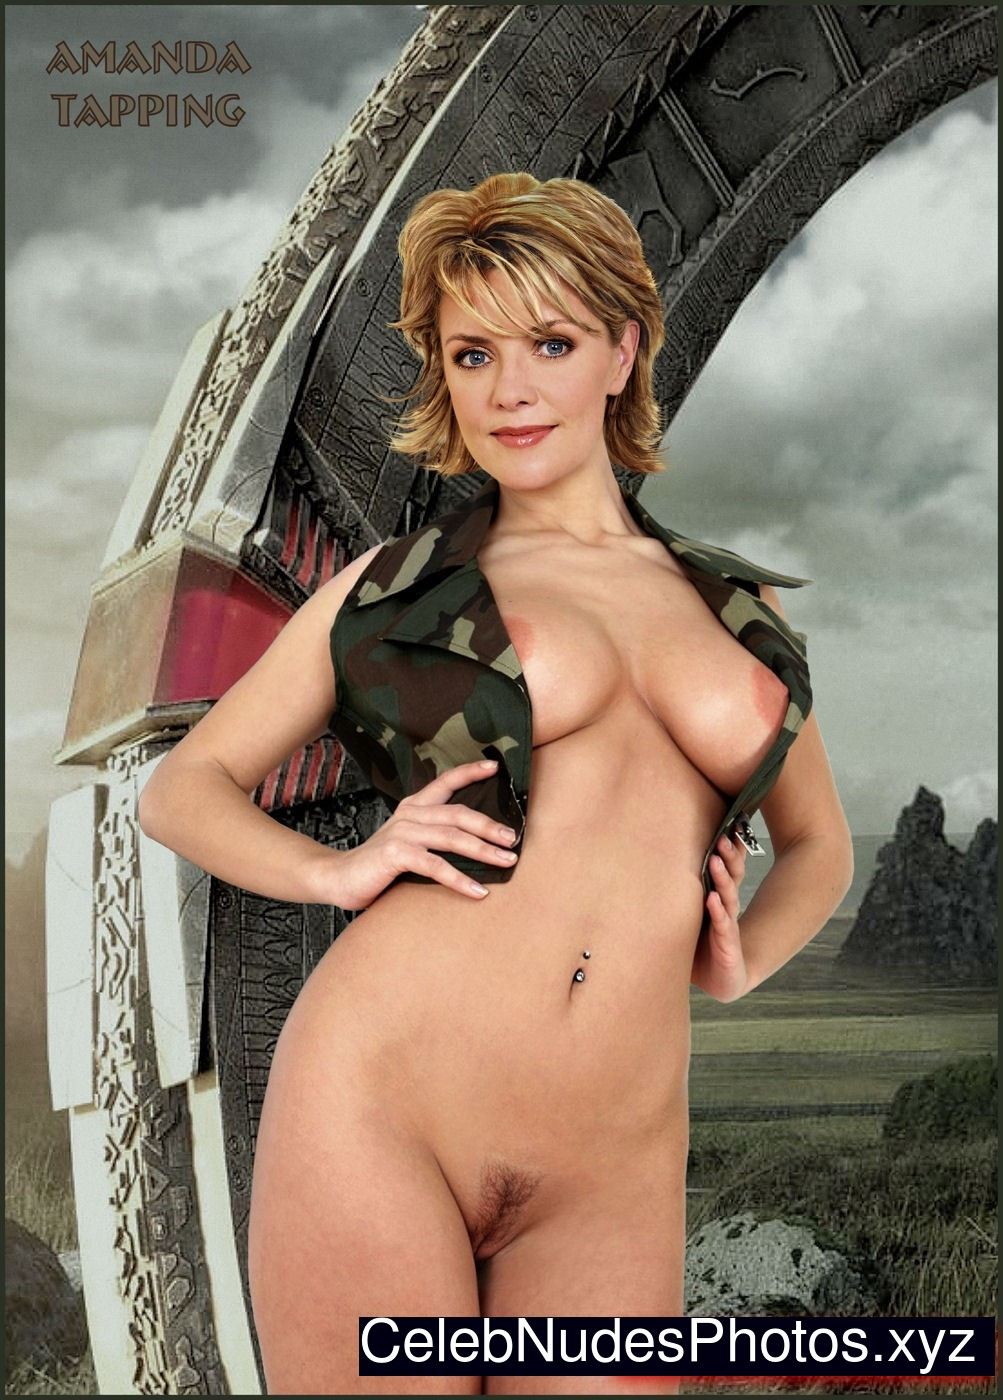 Amanda tapping nude picture free slut